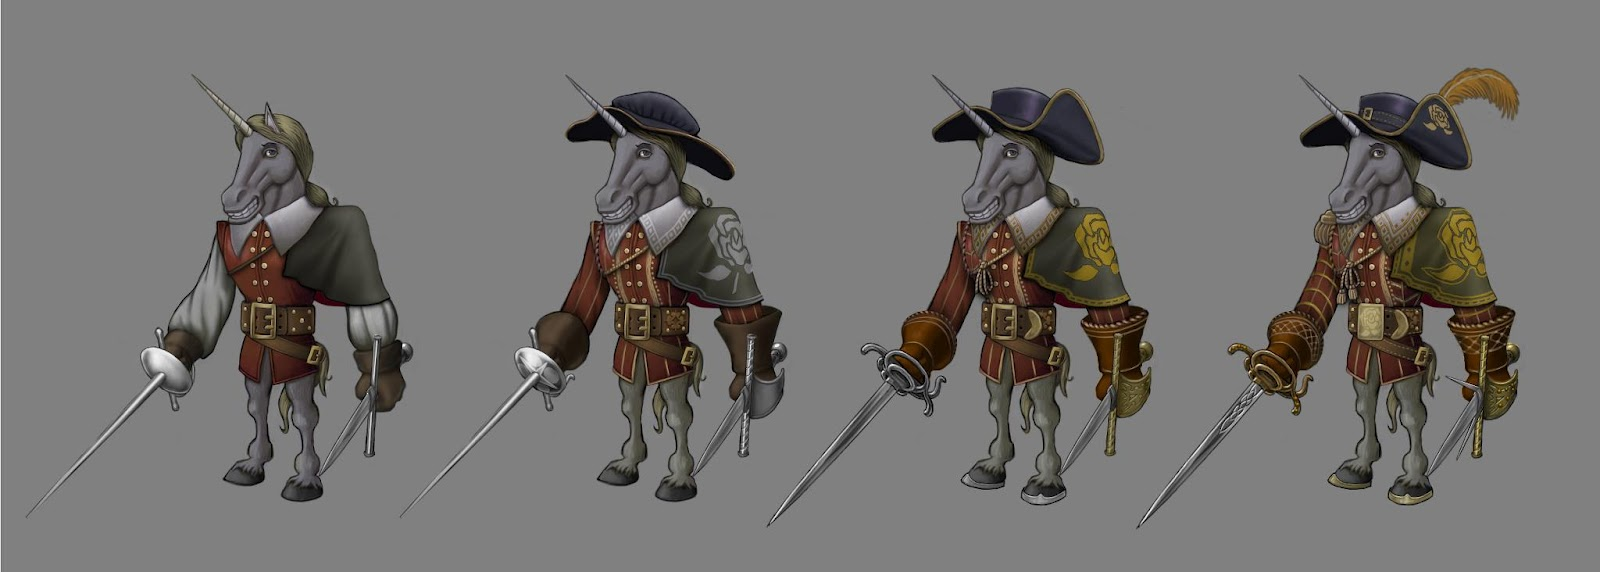 Swashbuckling Travels: New Concept Art & Pirate101 Alpha in